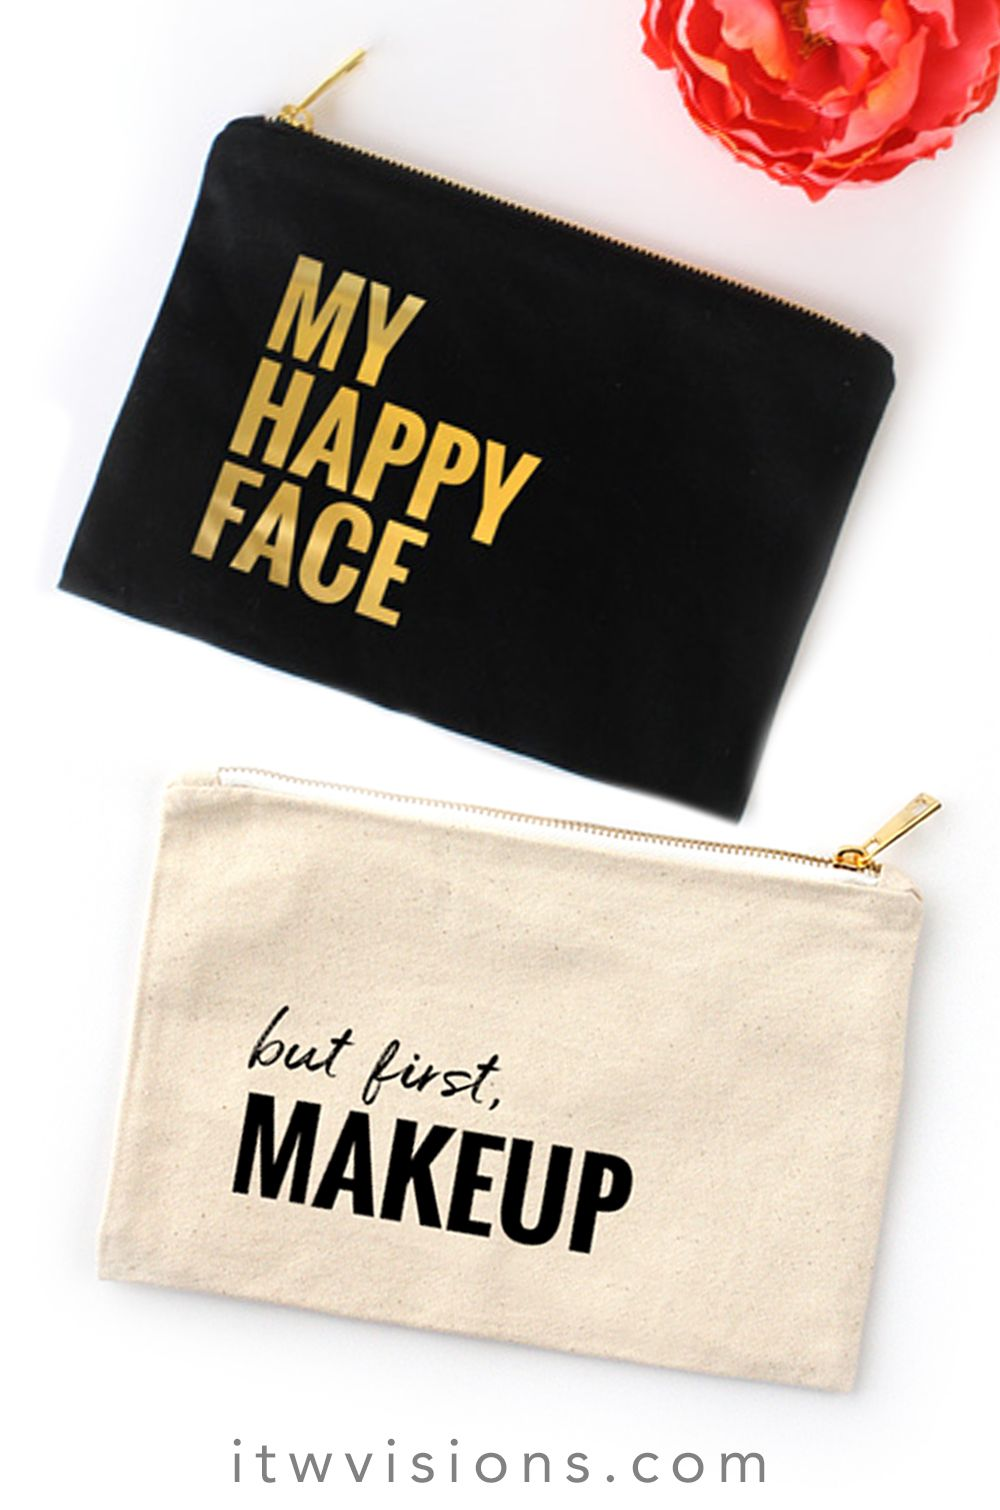 Super Cute Canvas Cosmetic Bags With Fun Little Sayings And Makeup Beauty Quotes On Them Rodan And Fiel Canvas Cosmetic Bag Funny Makeup Bag Makeup Bag Quote